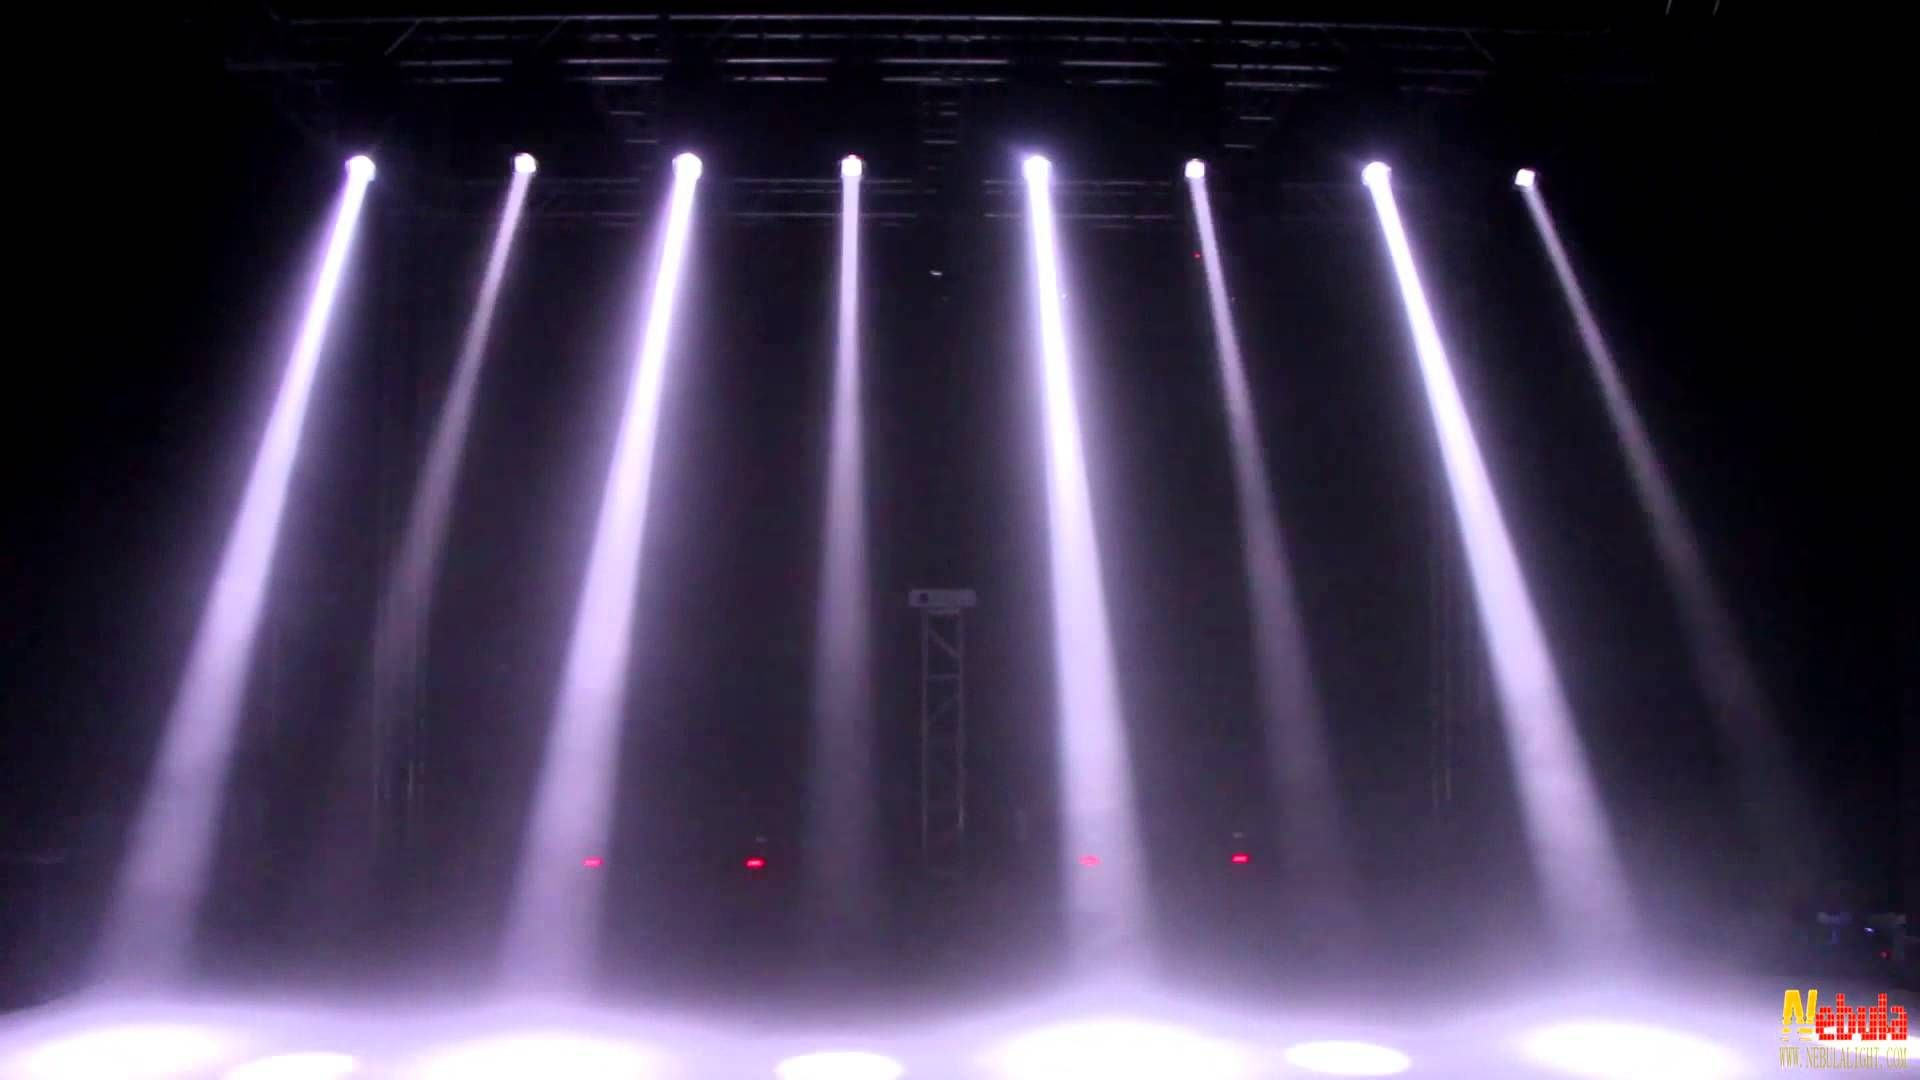 stage lighting wallpaper - photo #46